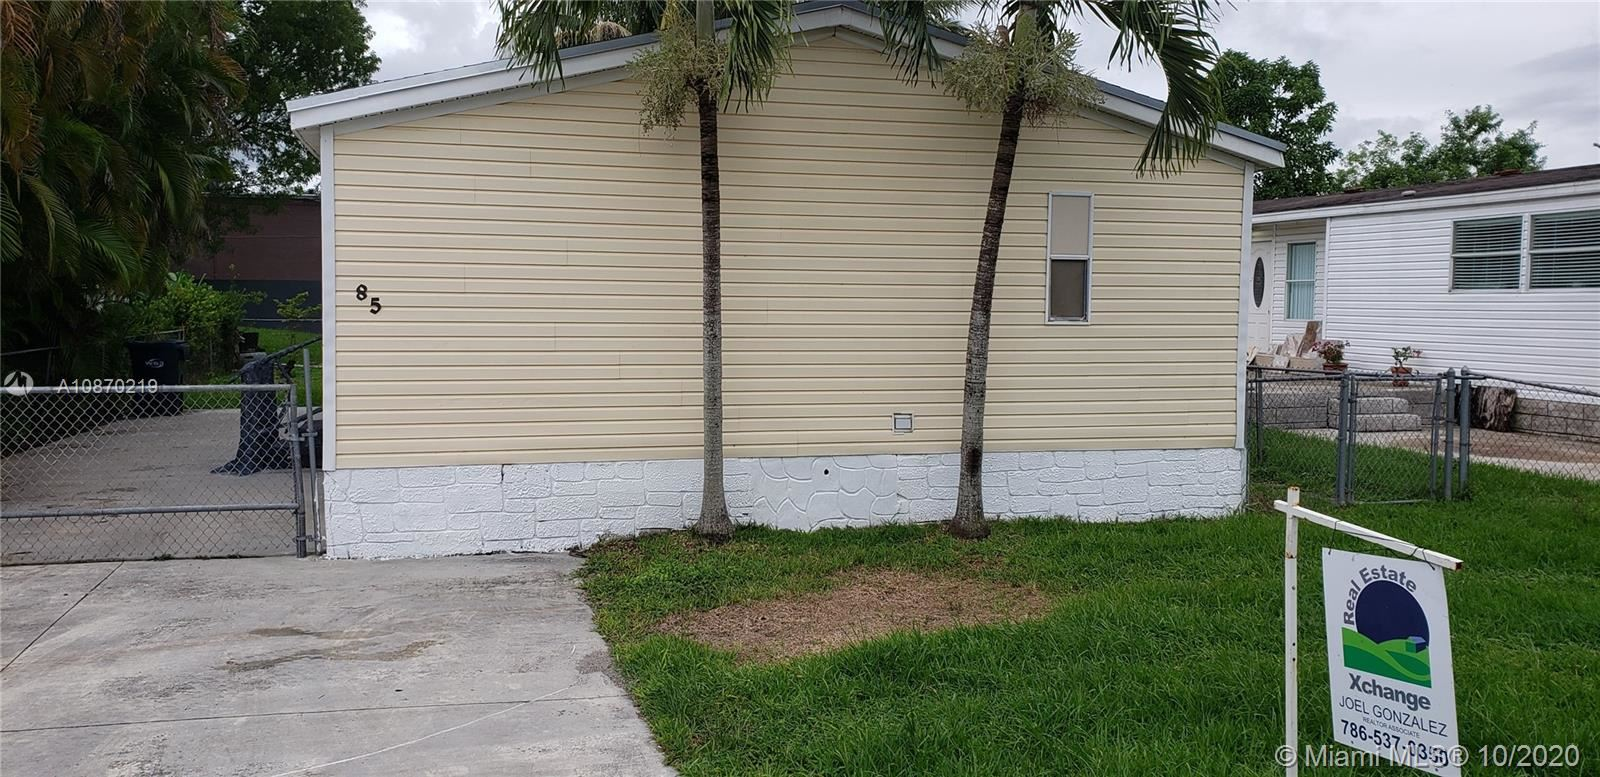 19800 SW 180th Ave lot 85, Miami, FL 33187 - #: A10870219